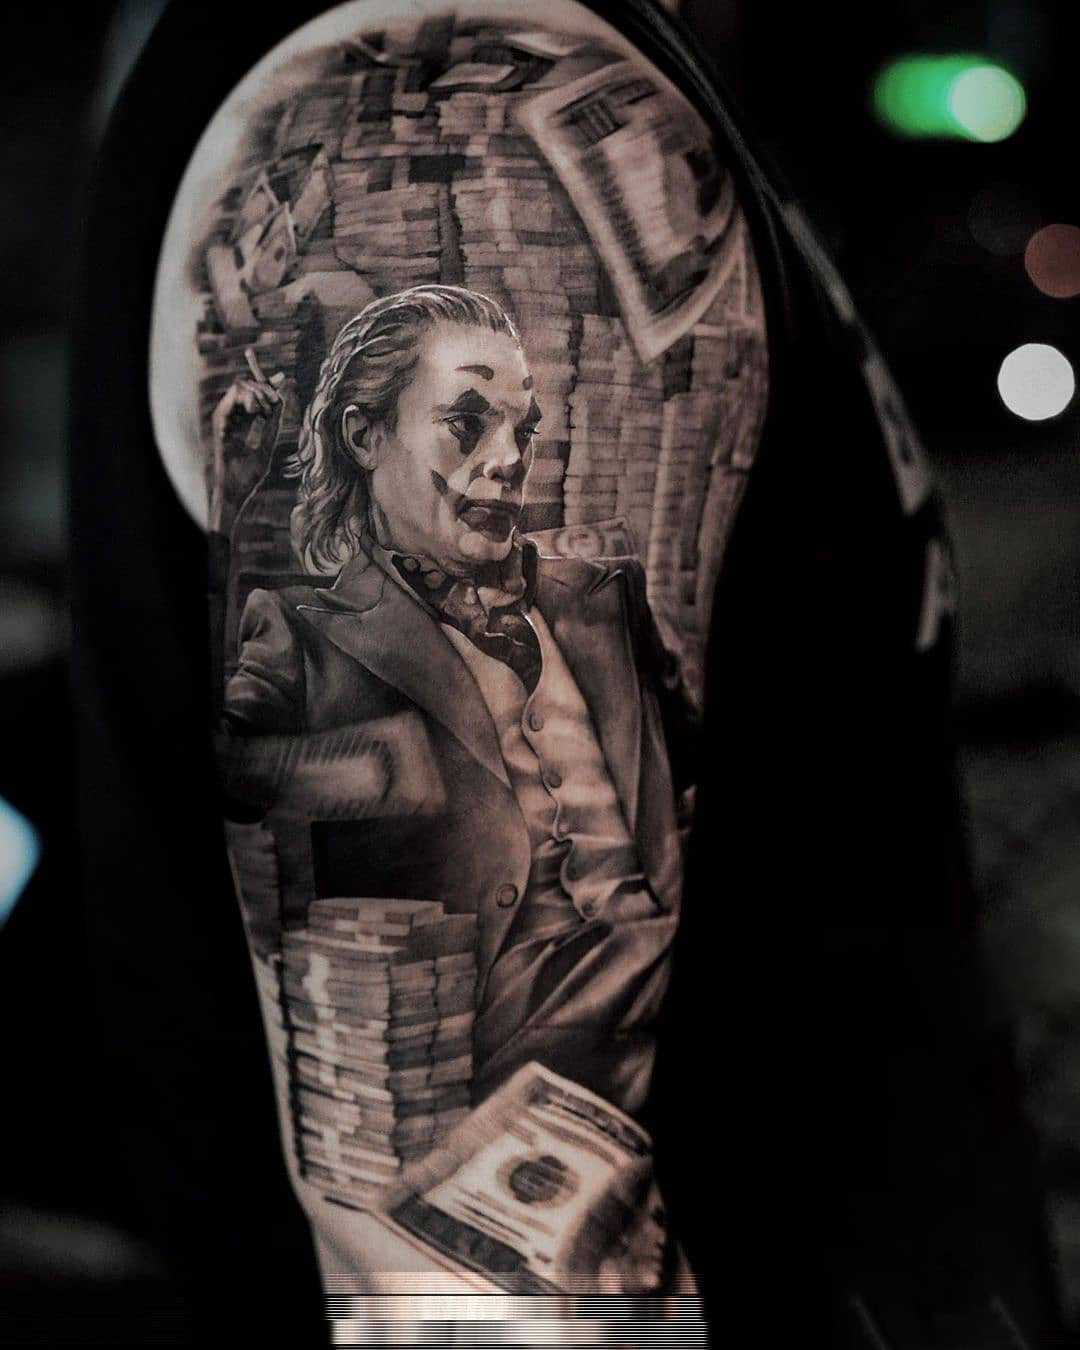 Joker - Tattoo on the arm in the style of realism